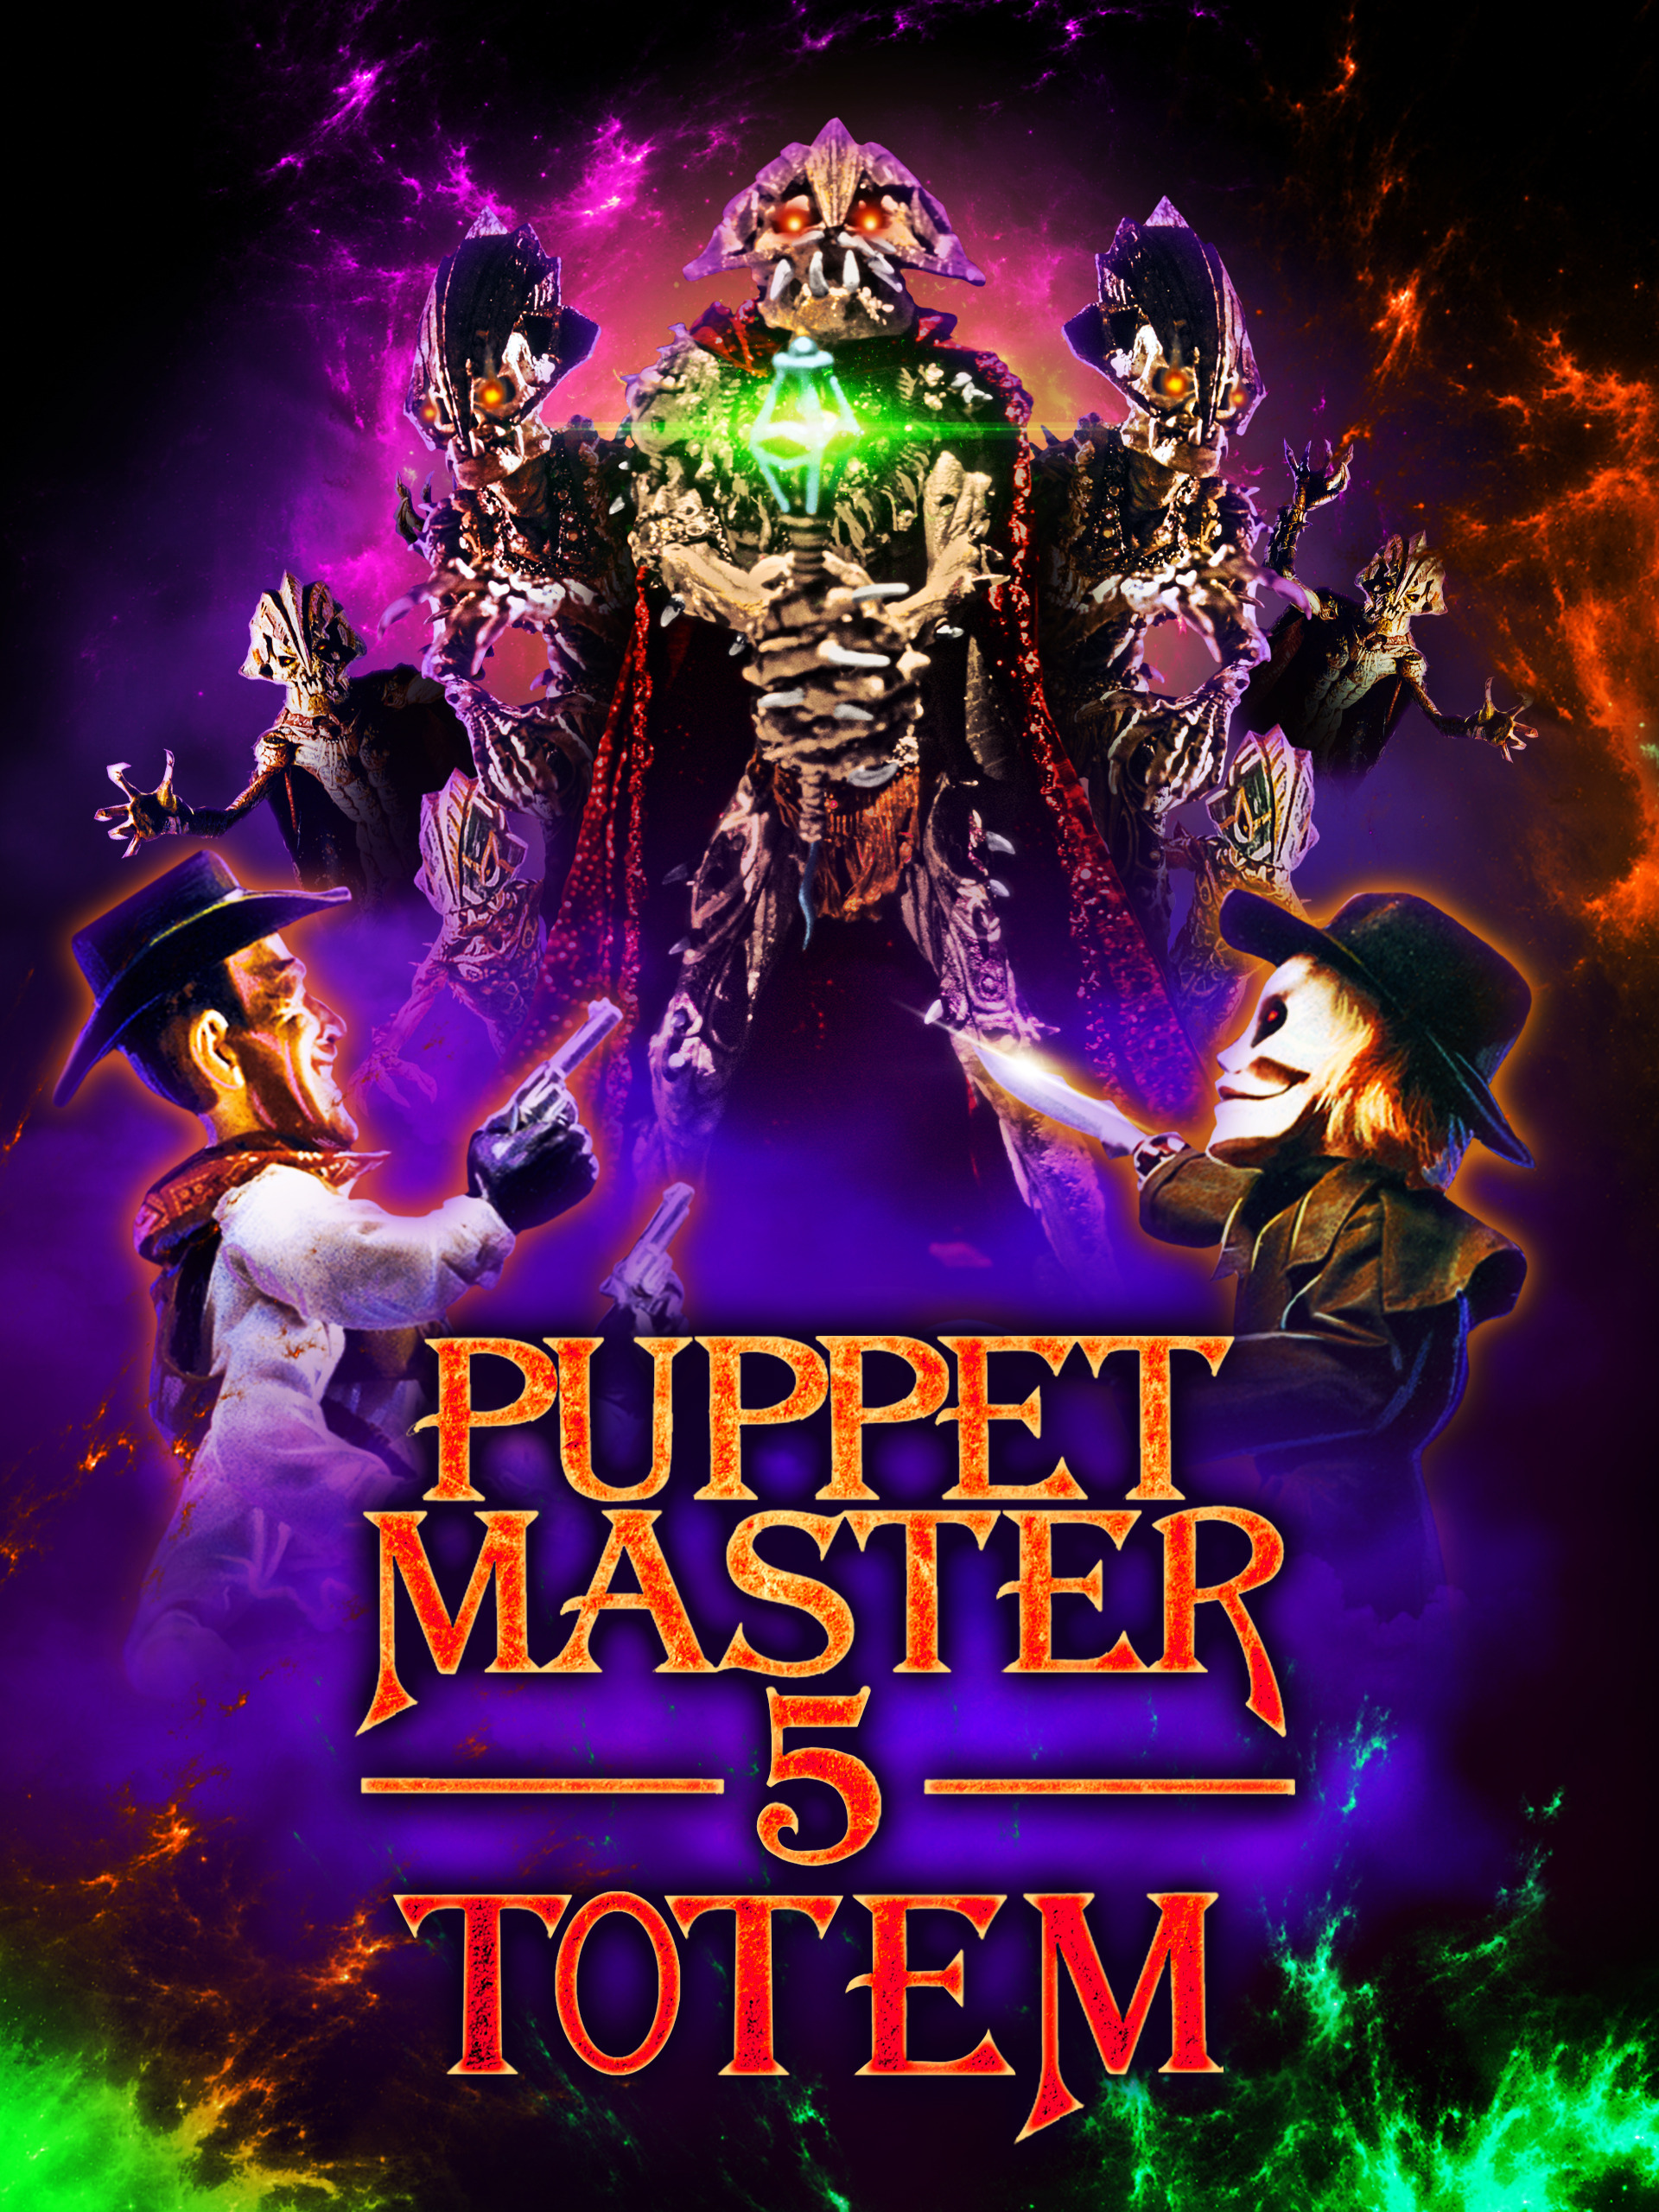 Puppet Master 5: Totem